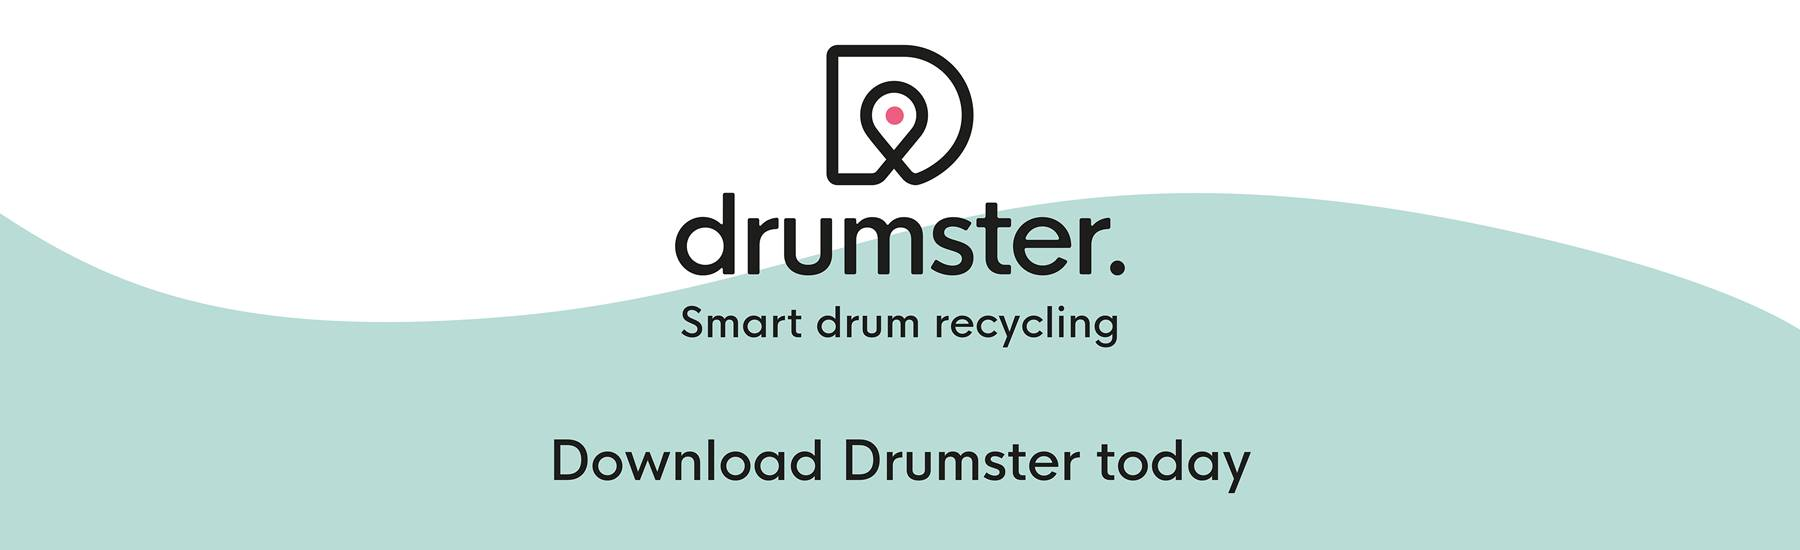 Drumster3 New